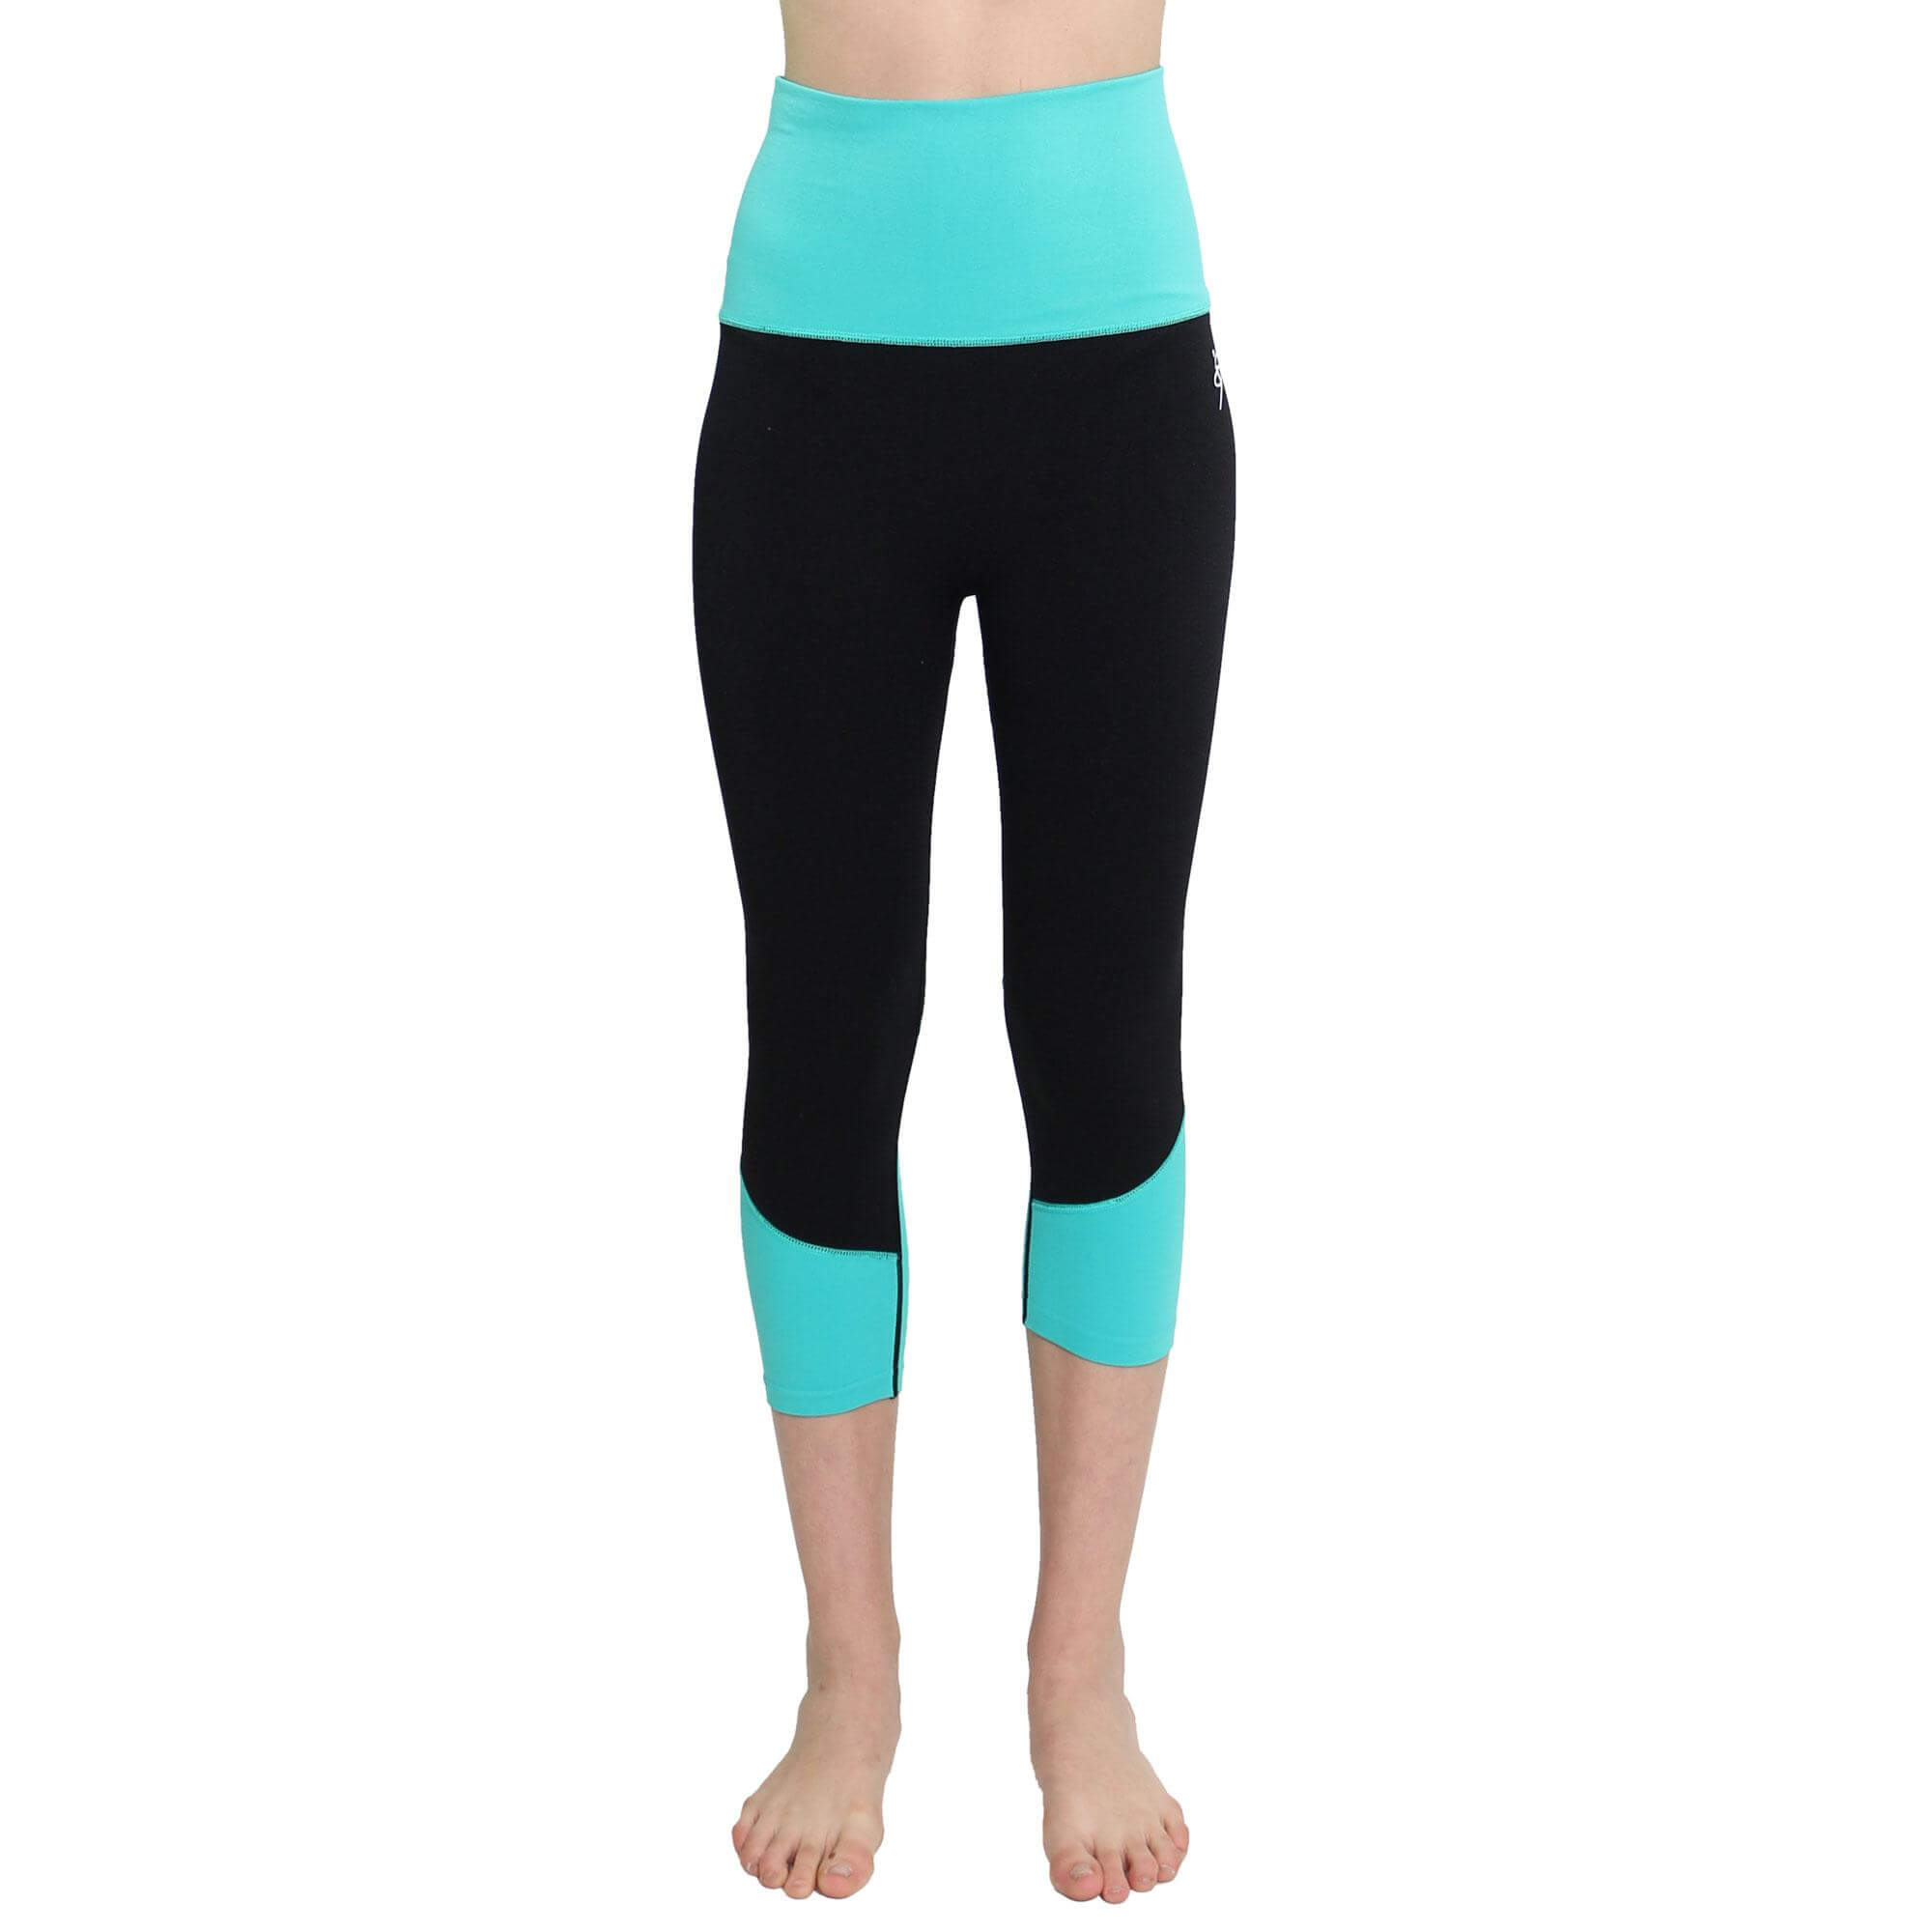 O To S Amazing Sports Dual-color Yoga Capri